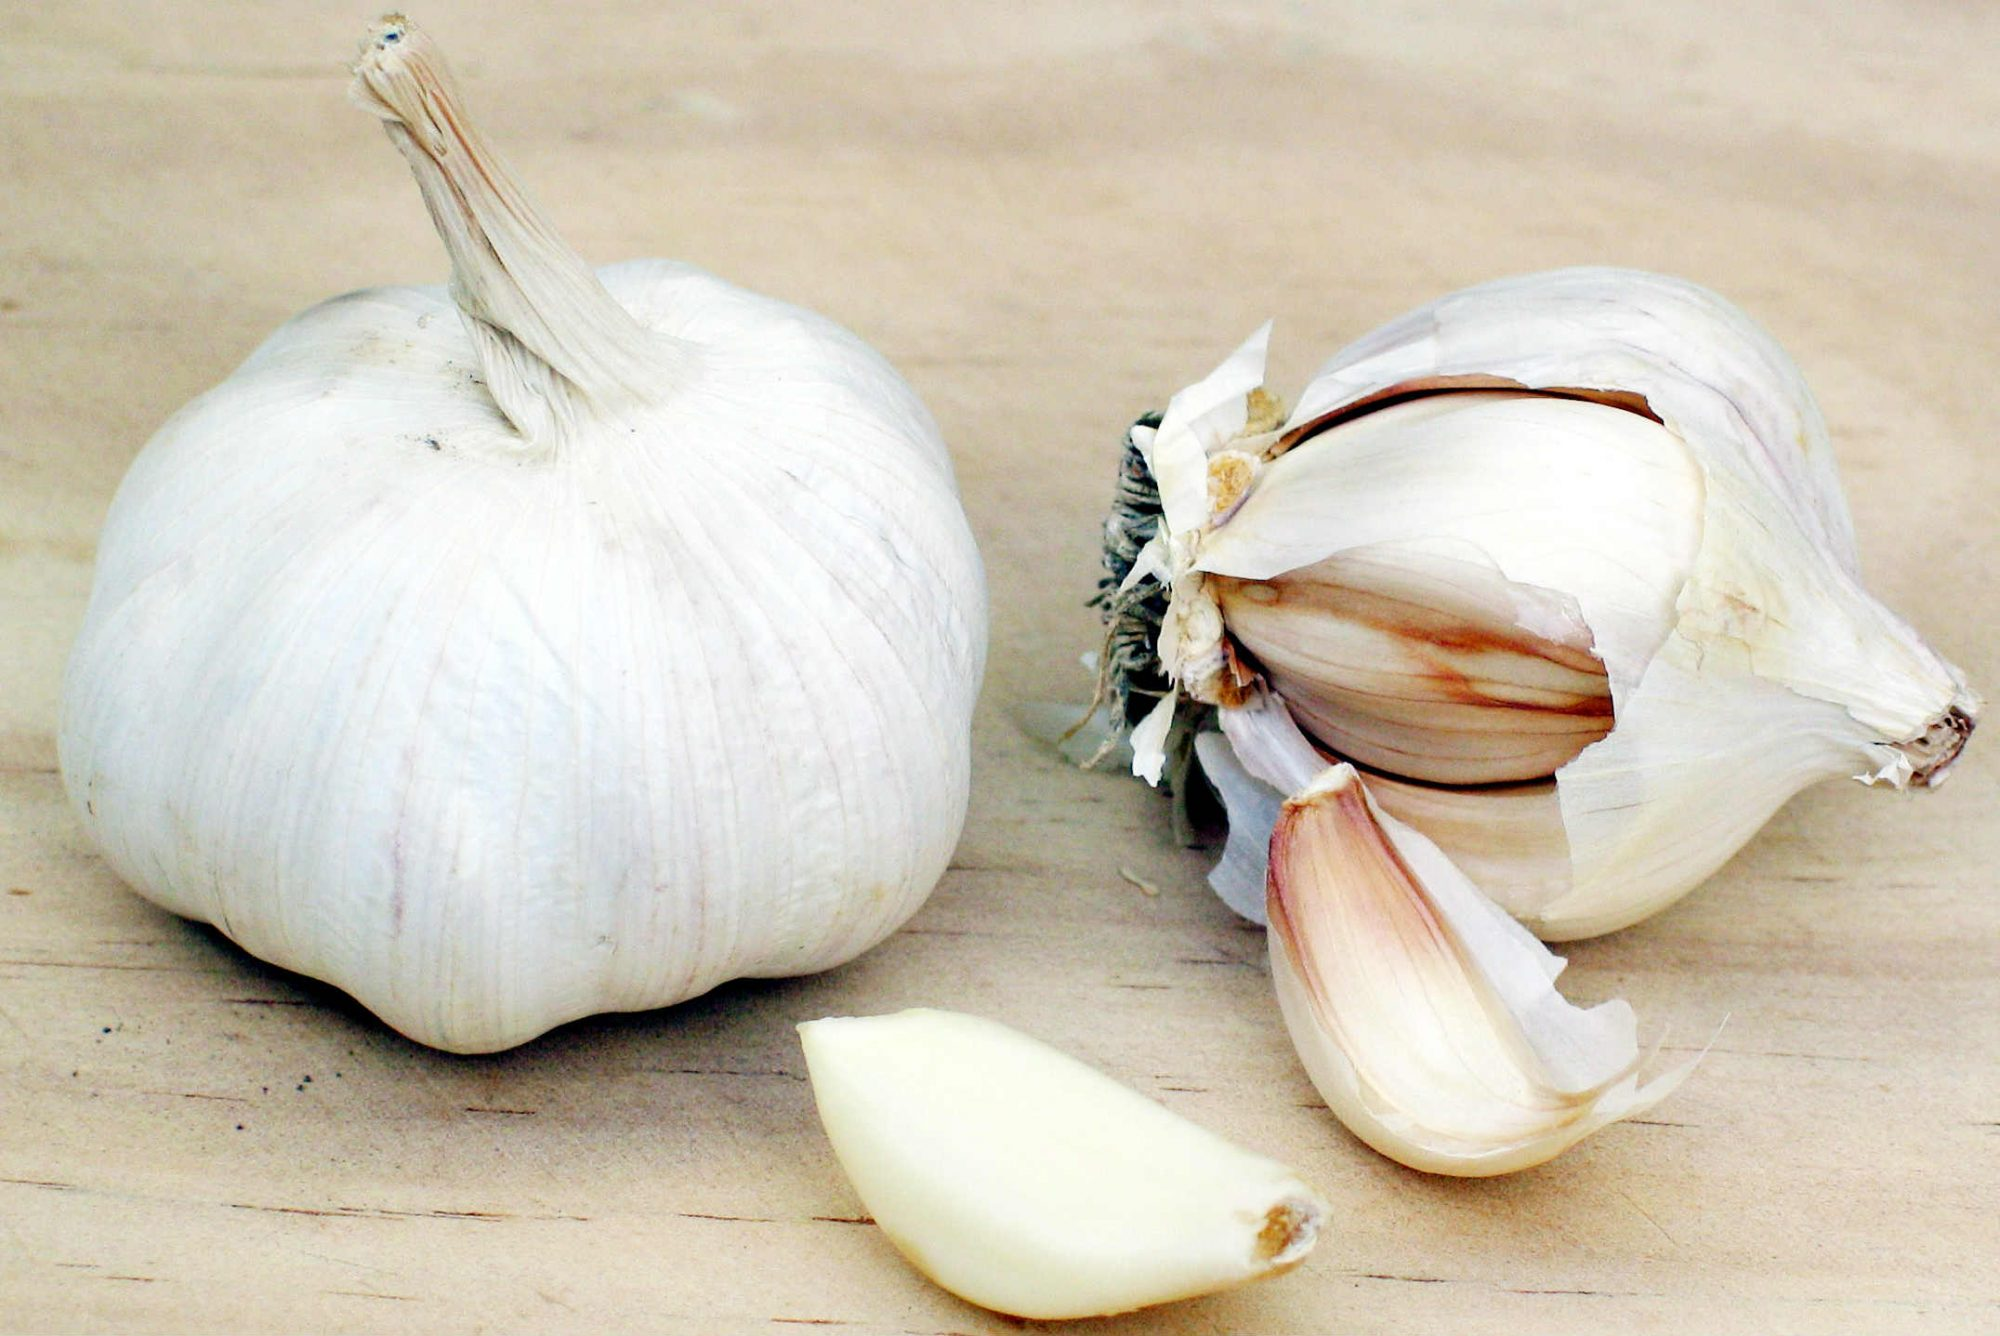 Garlic Extract May Minimize Effects of Gingivitis